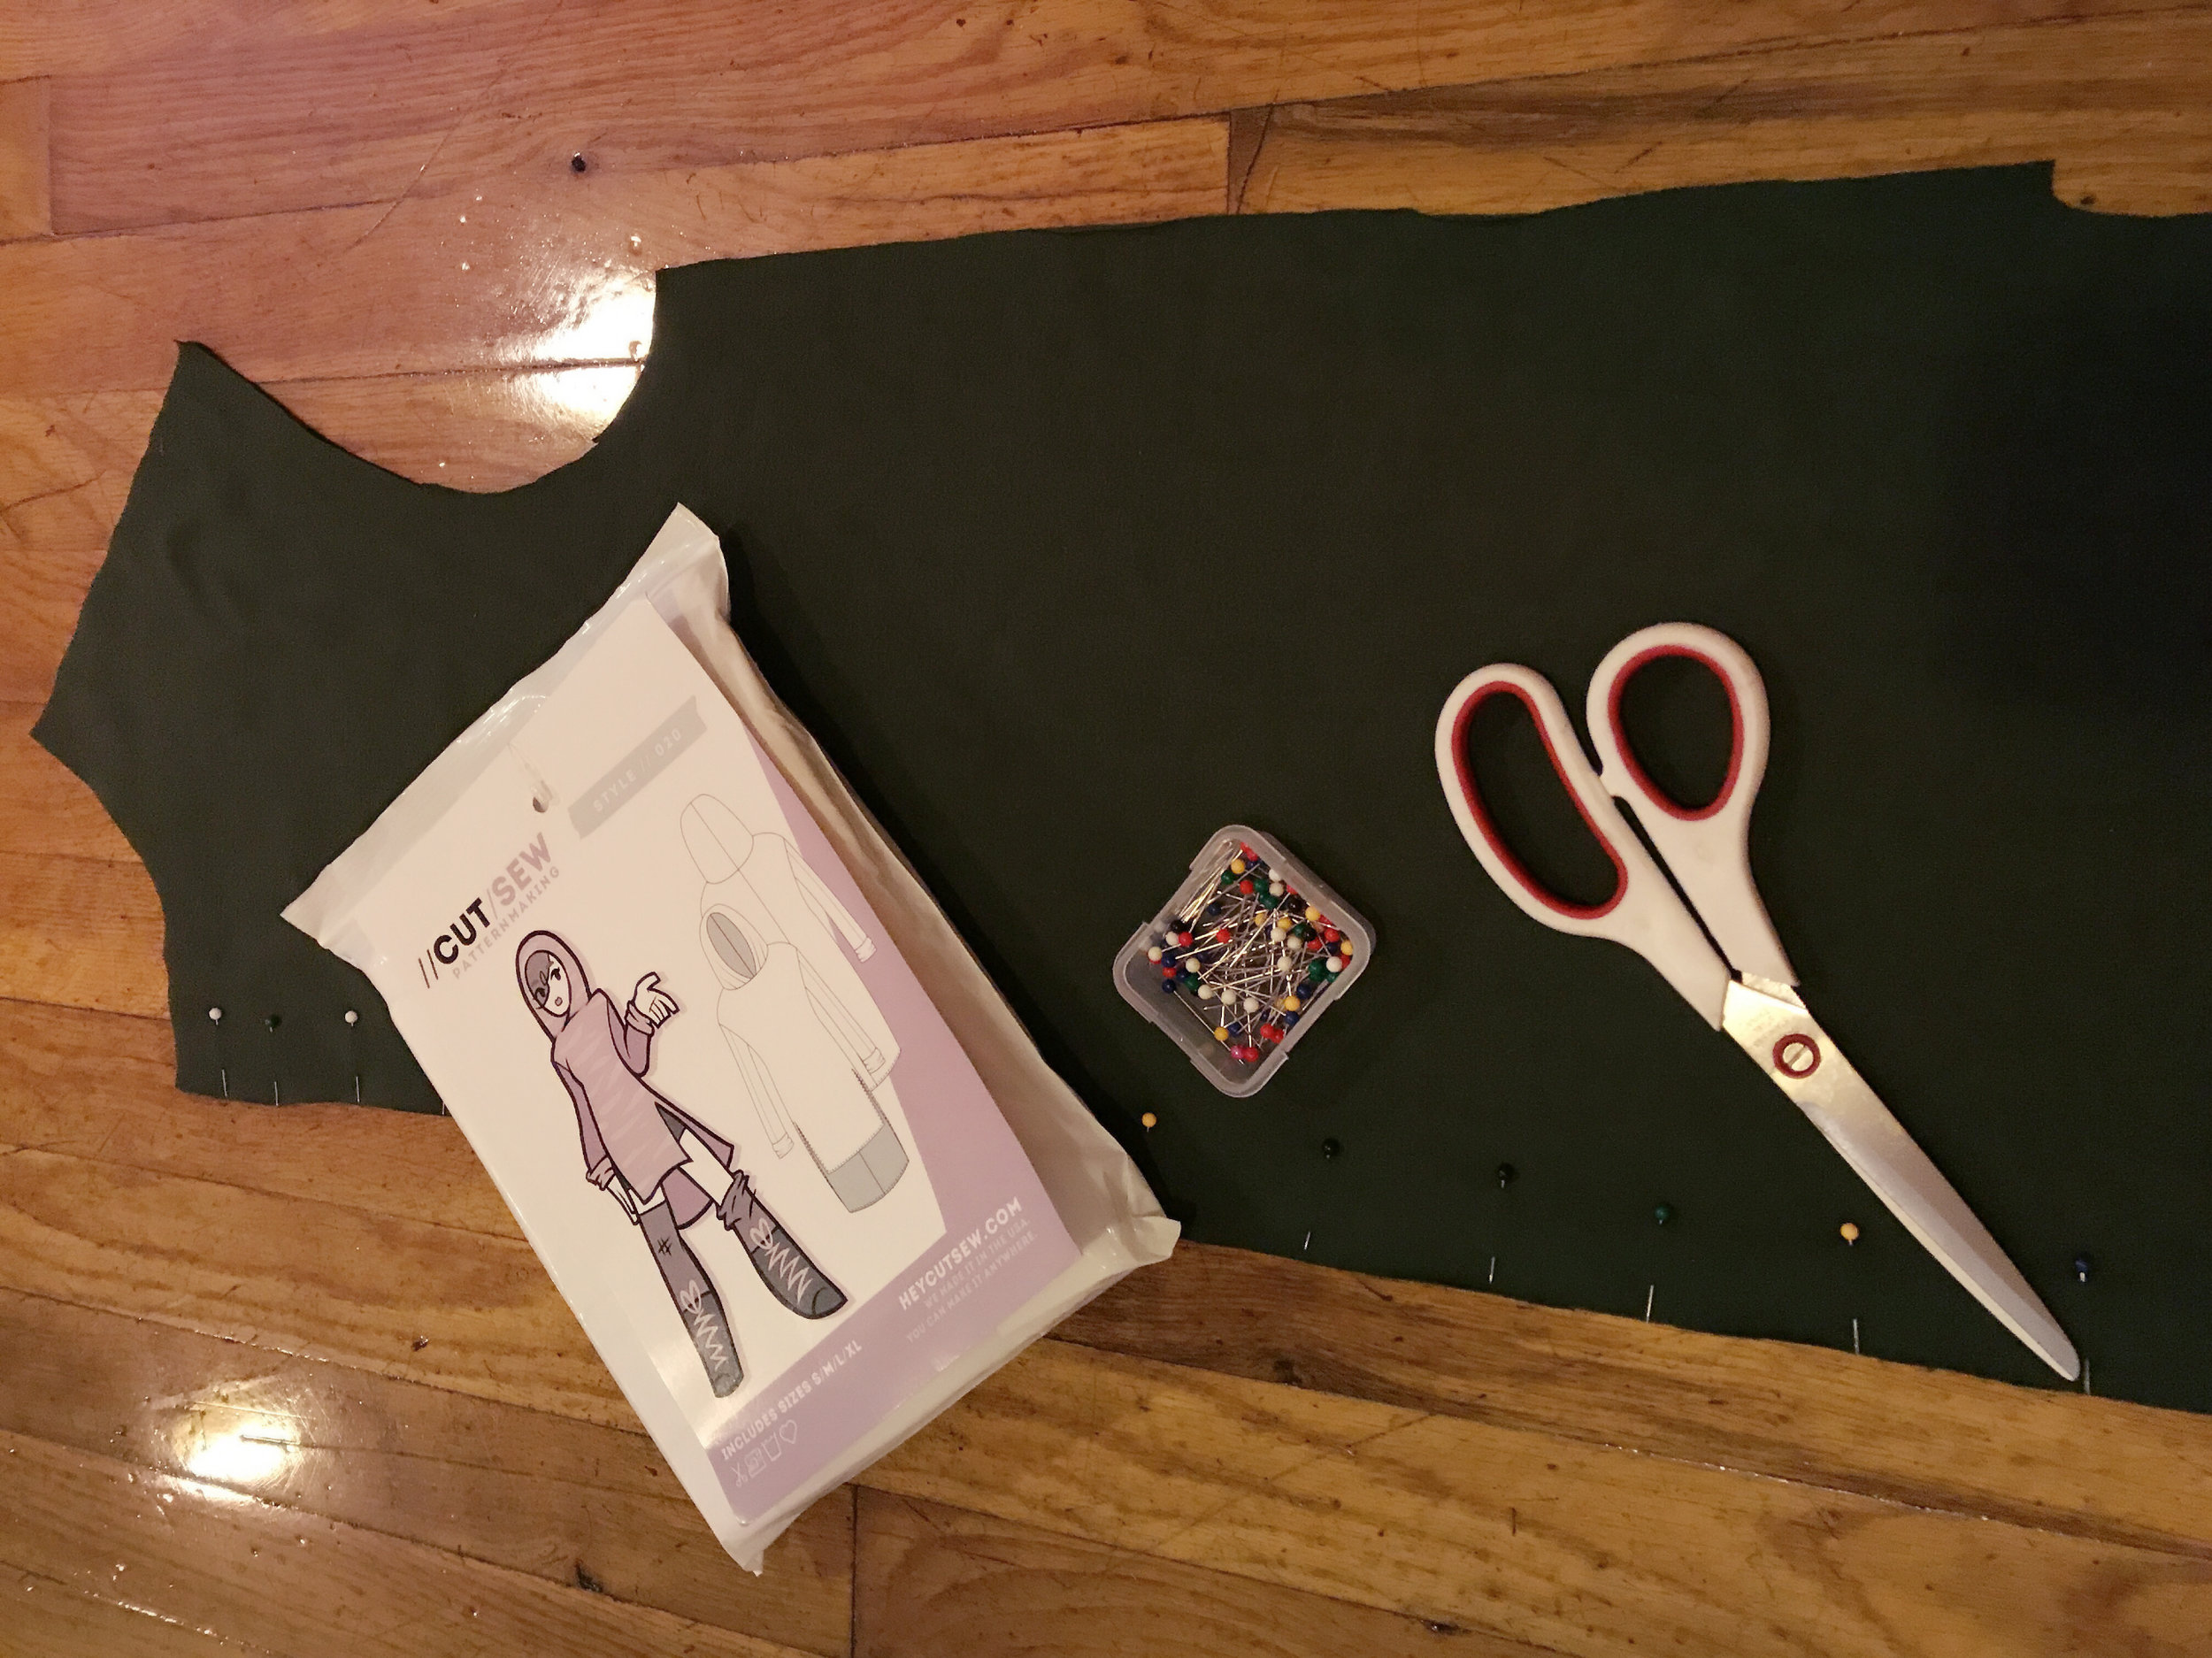 My shears and ballpoint pins with the fabric I cut out from the pattern